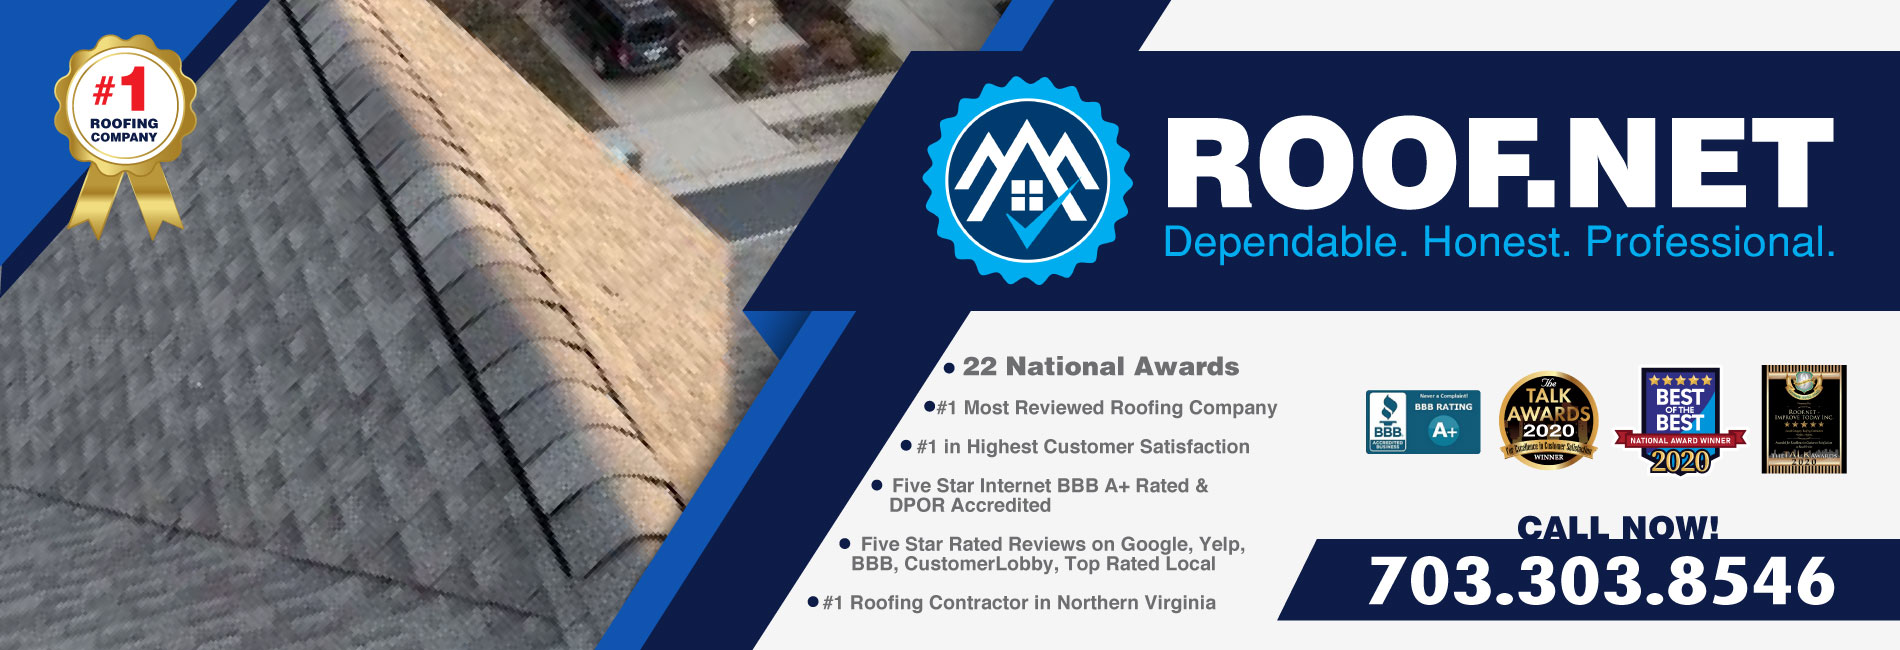 Roof.net Best Roofers in Town